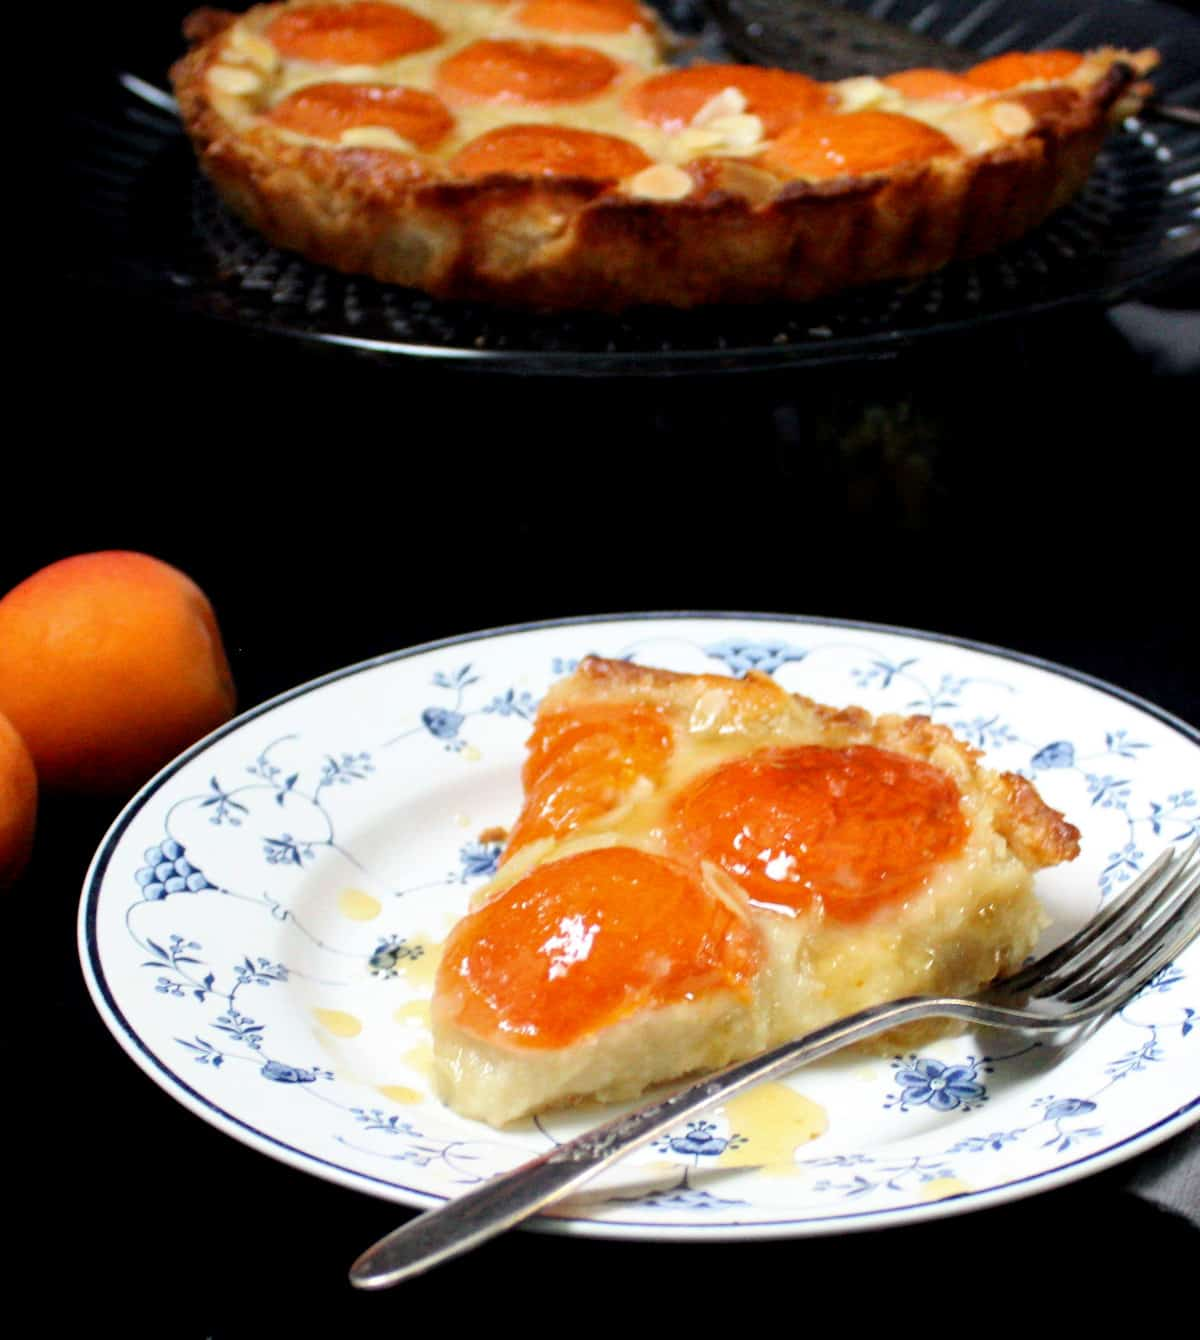 A plate with a slice of vegan apricot frangipane tart with a fork and fresh apricots.